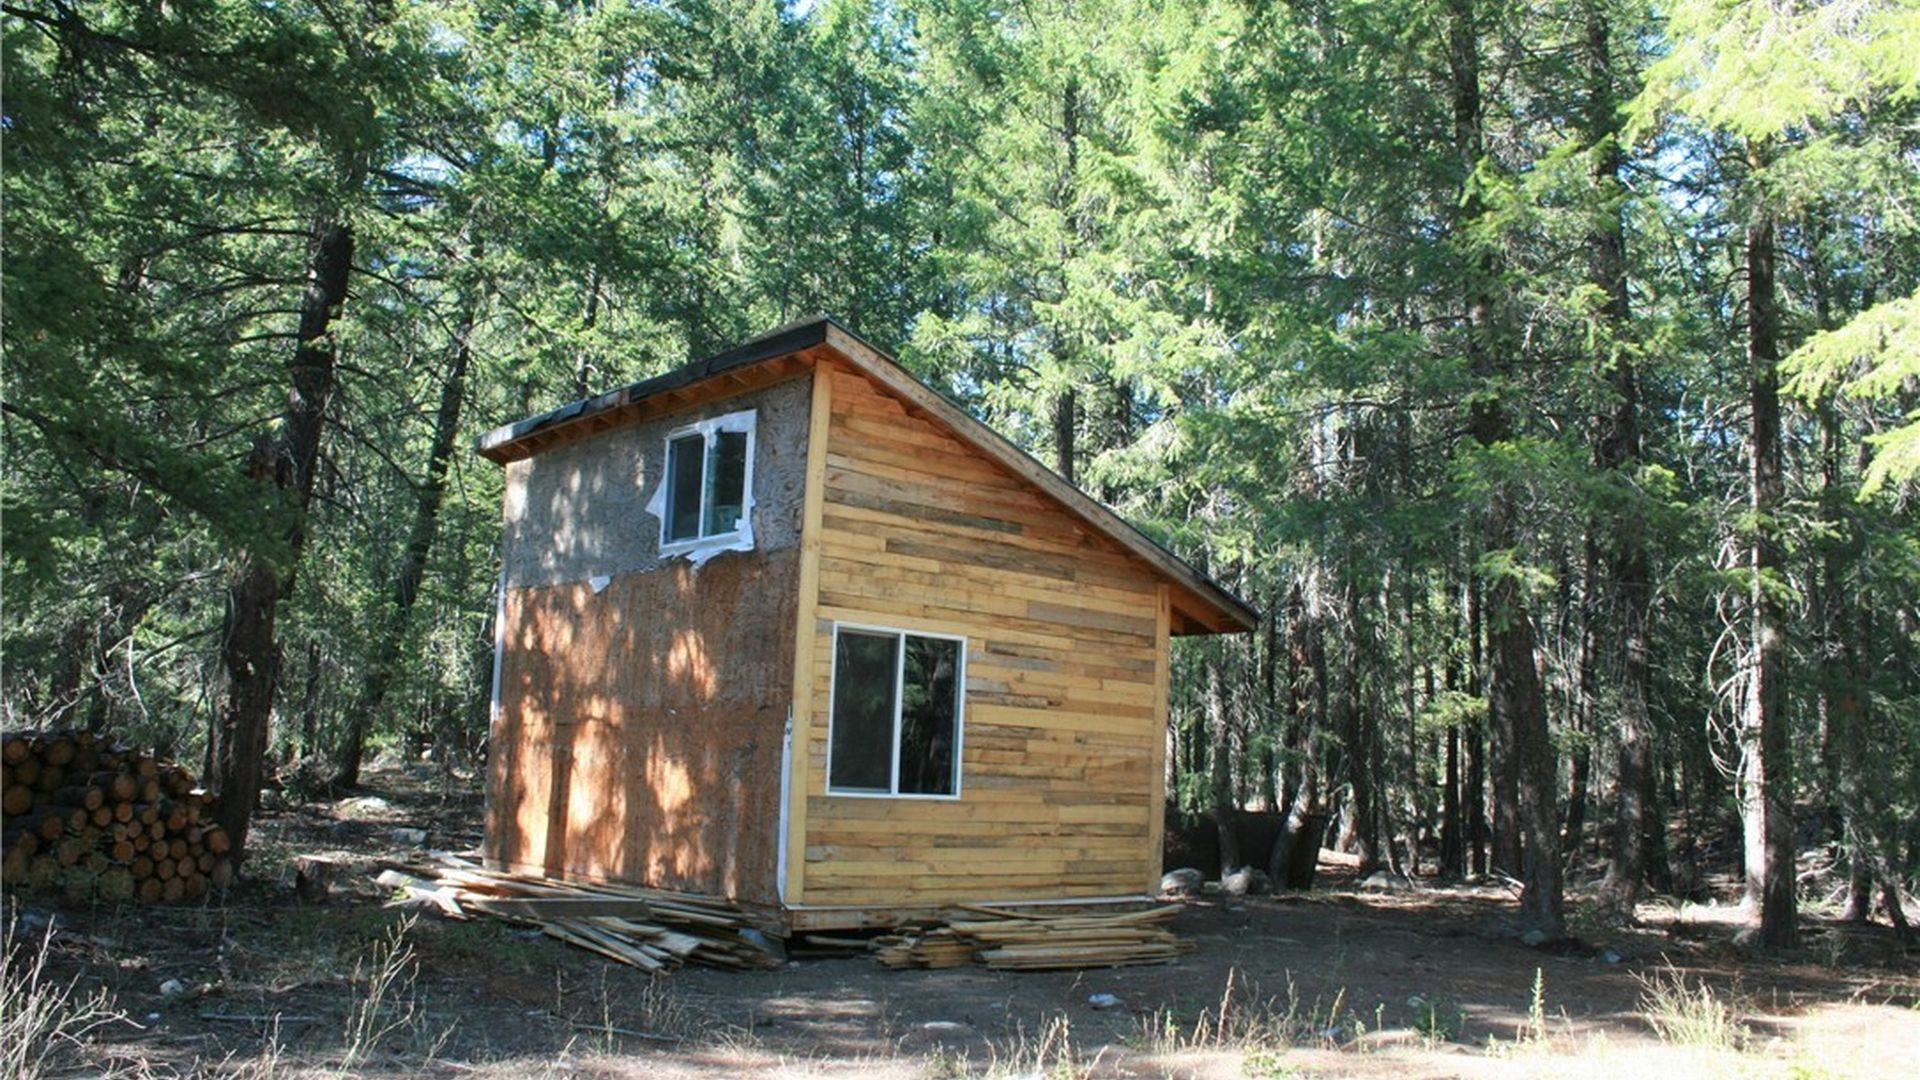 Small Cabin Winthrop Real Estate Winthrop Wa Homes For